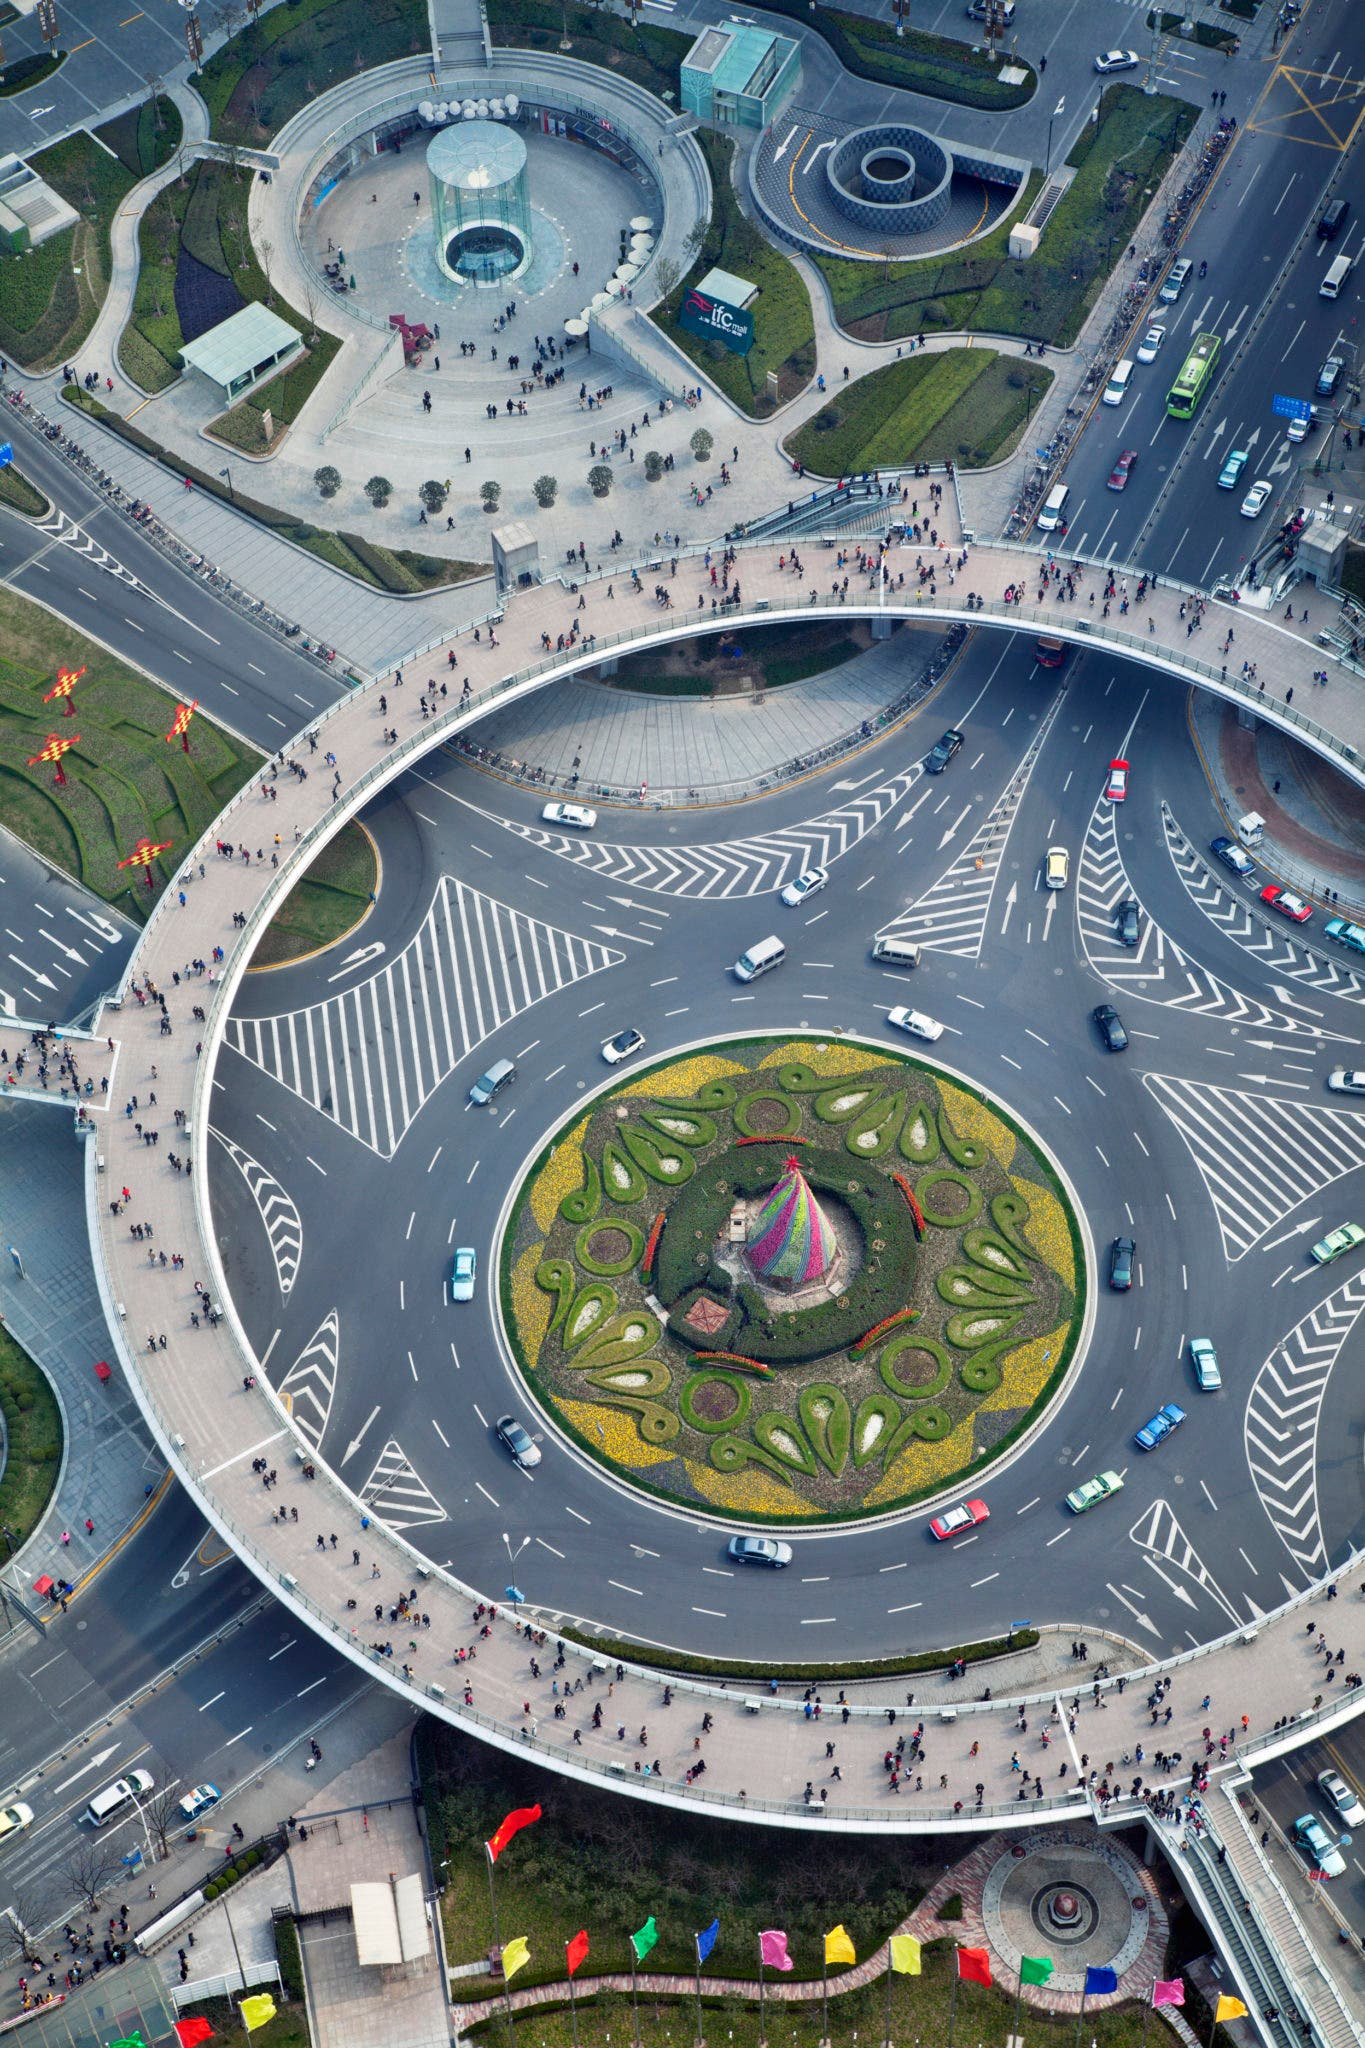 Photographed through the spherical glass floor of the Oriental Pearl Tower, an enormous roundabout functions as ornament and traffic control in the financial heart of Shanghai.